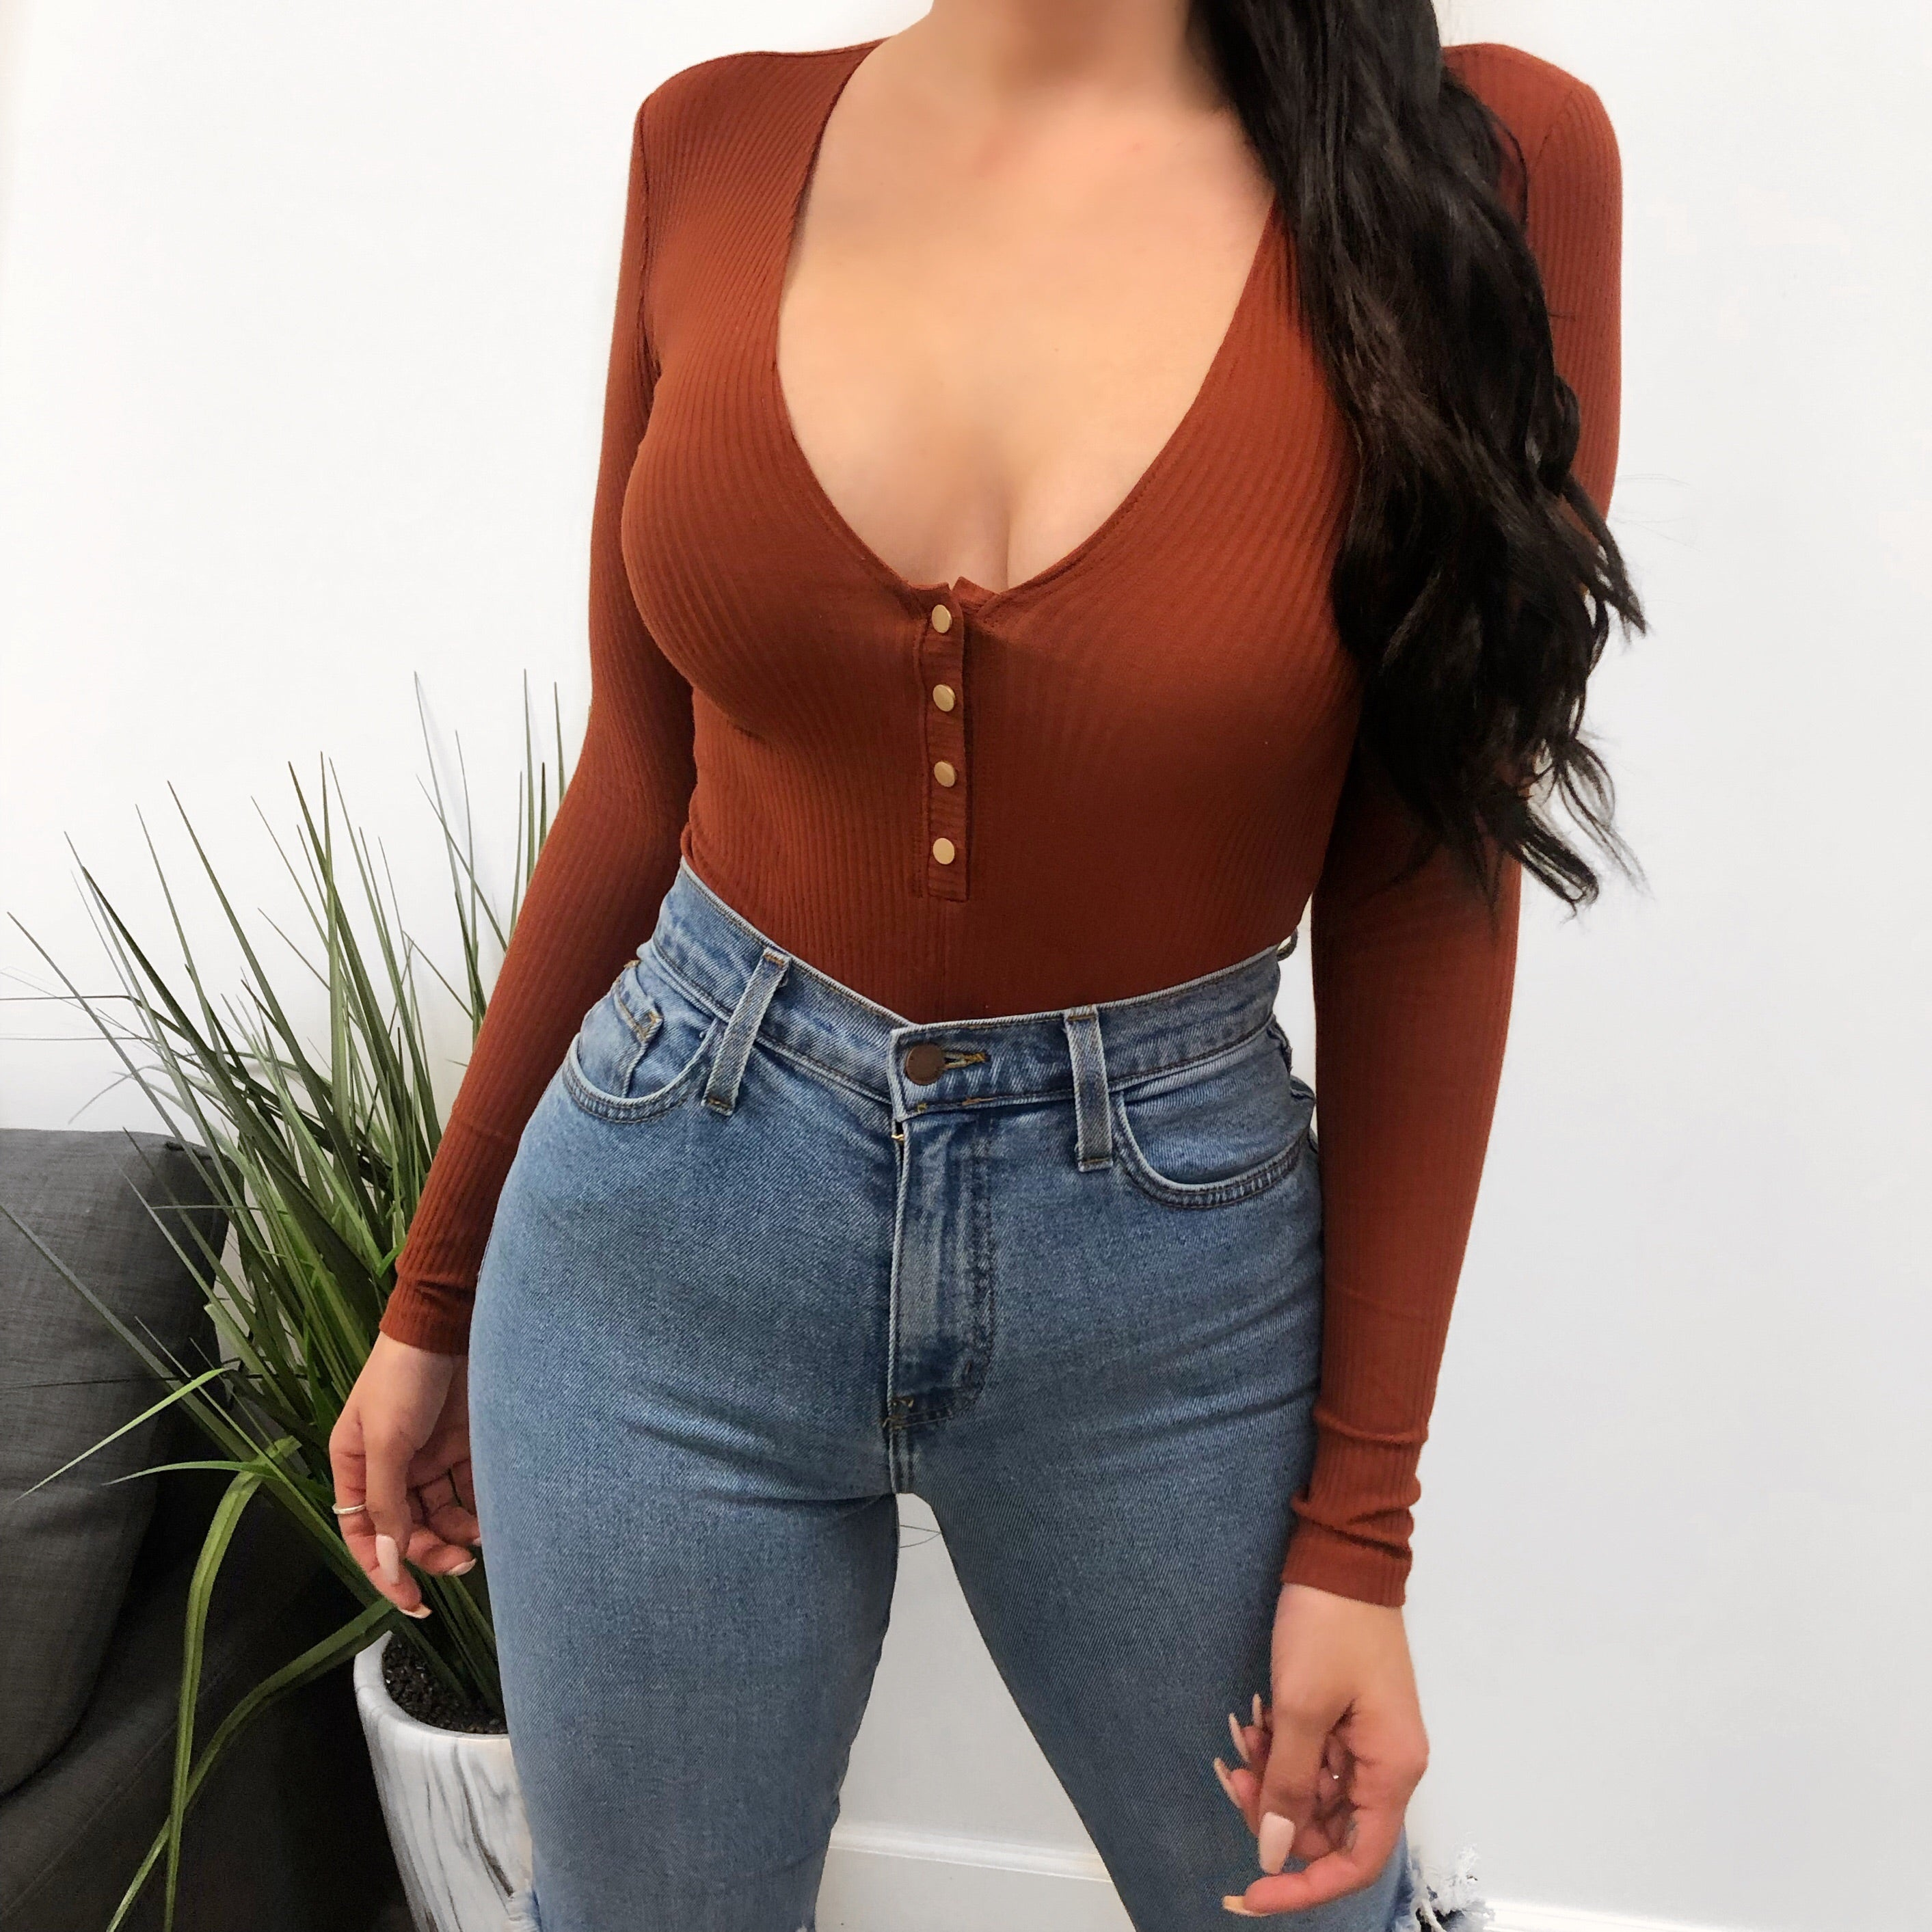 rust long sleeve bodysuit. flat silver buttons in the middle area for style. low cut v neckline. shows cleavage.